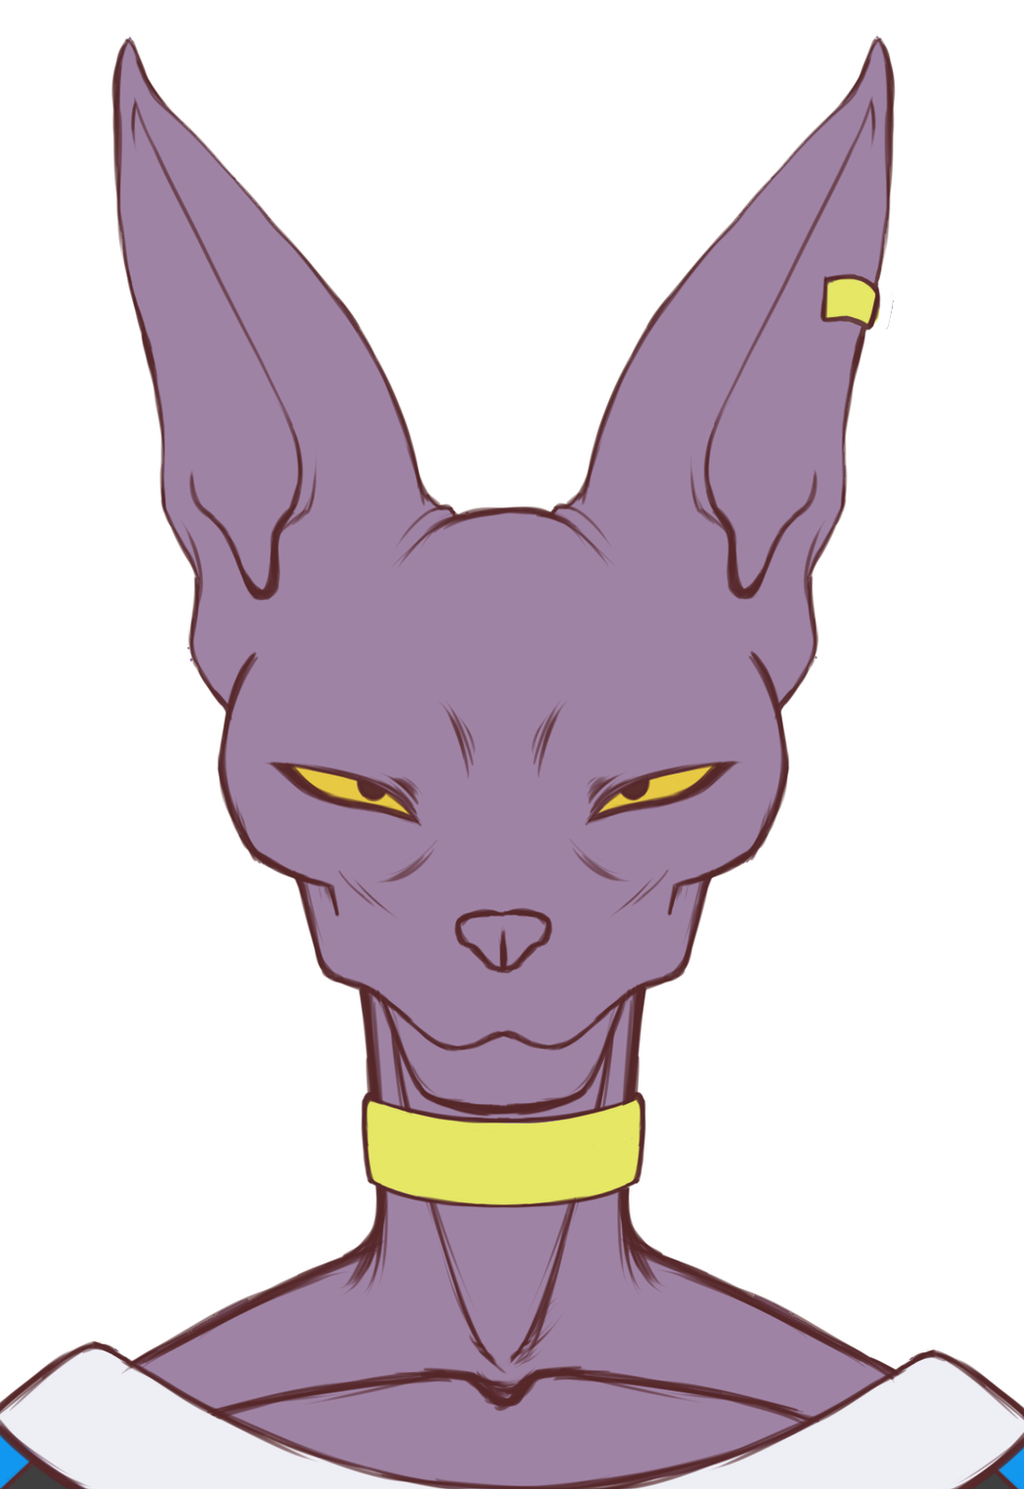 76 Beerus Wikipedia Beerus Dragon Ball Wiki Fandom Powered By